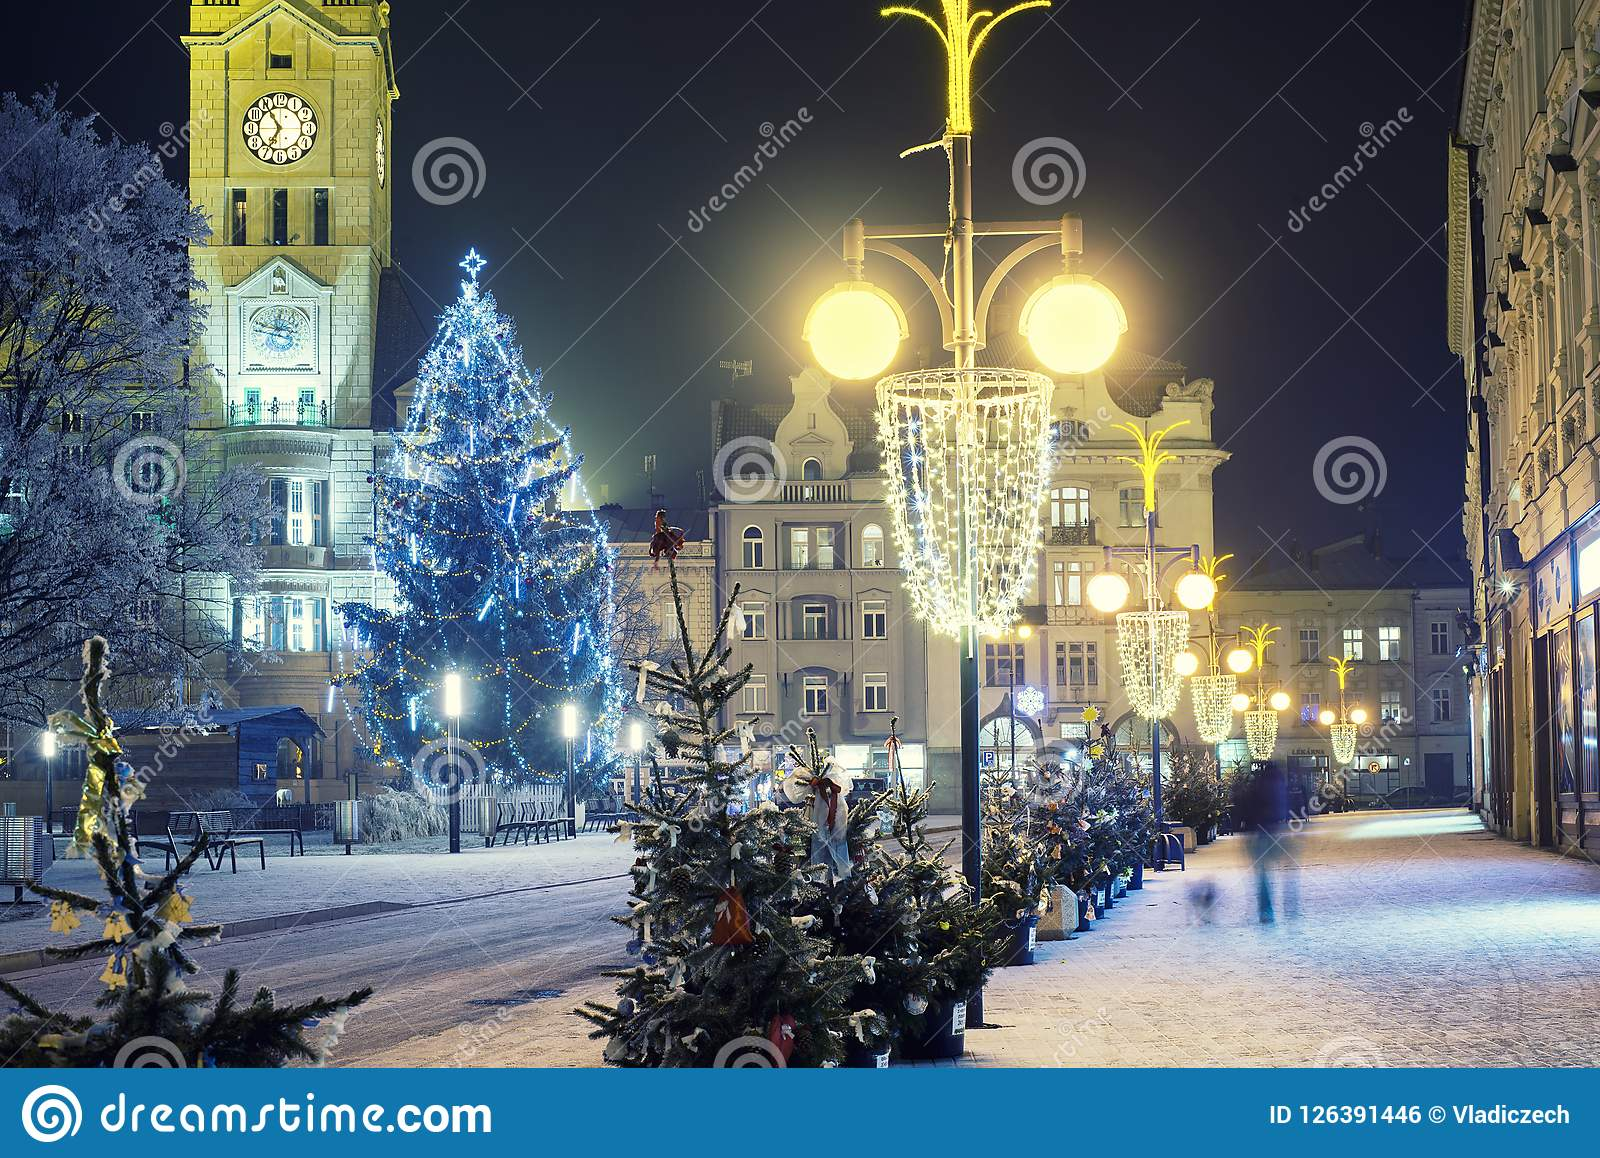 download empty christmas town with decorations and lights and the tree stock photo image